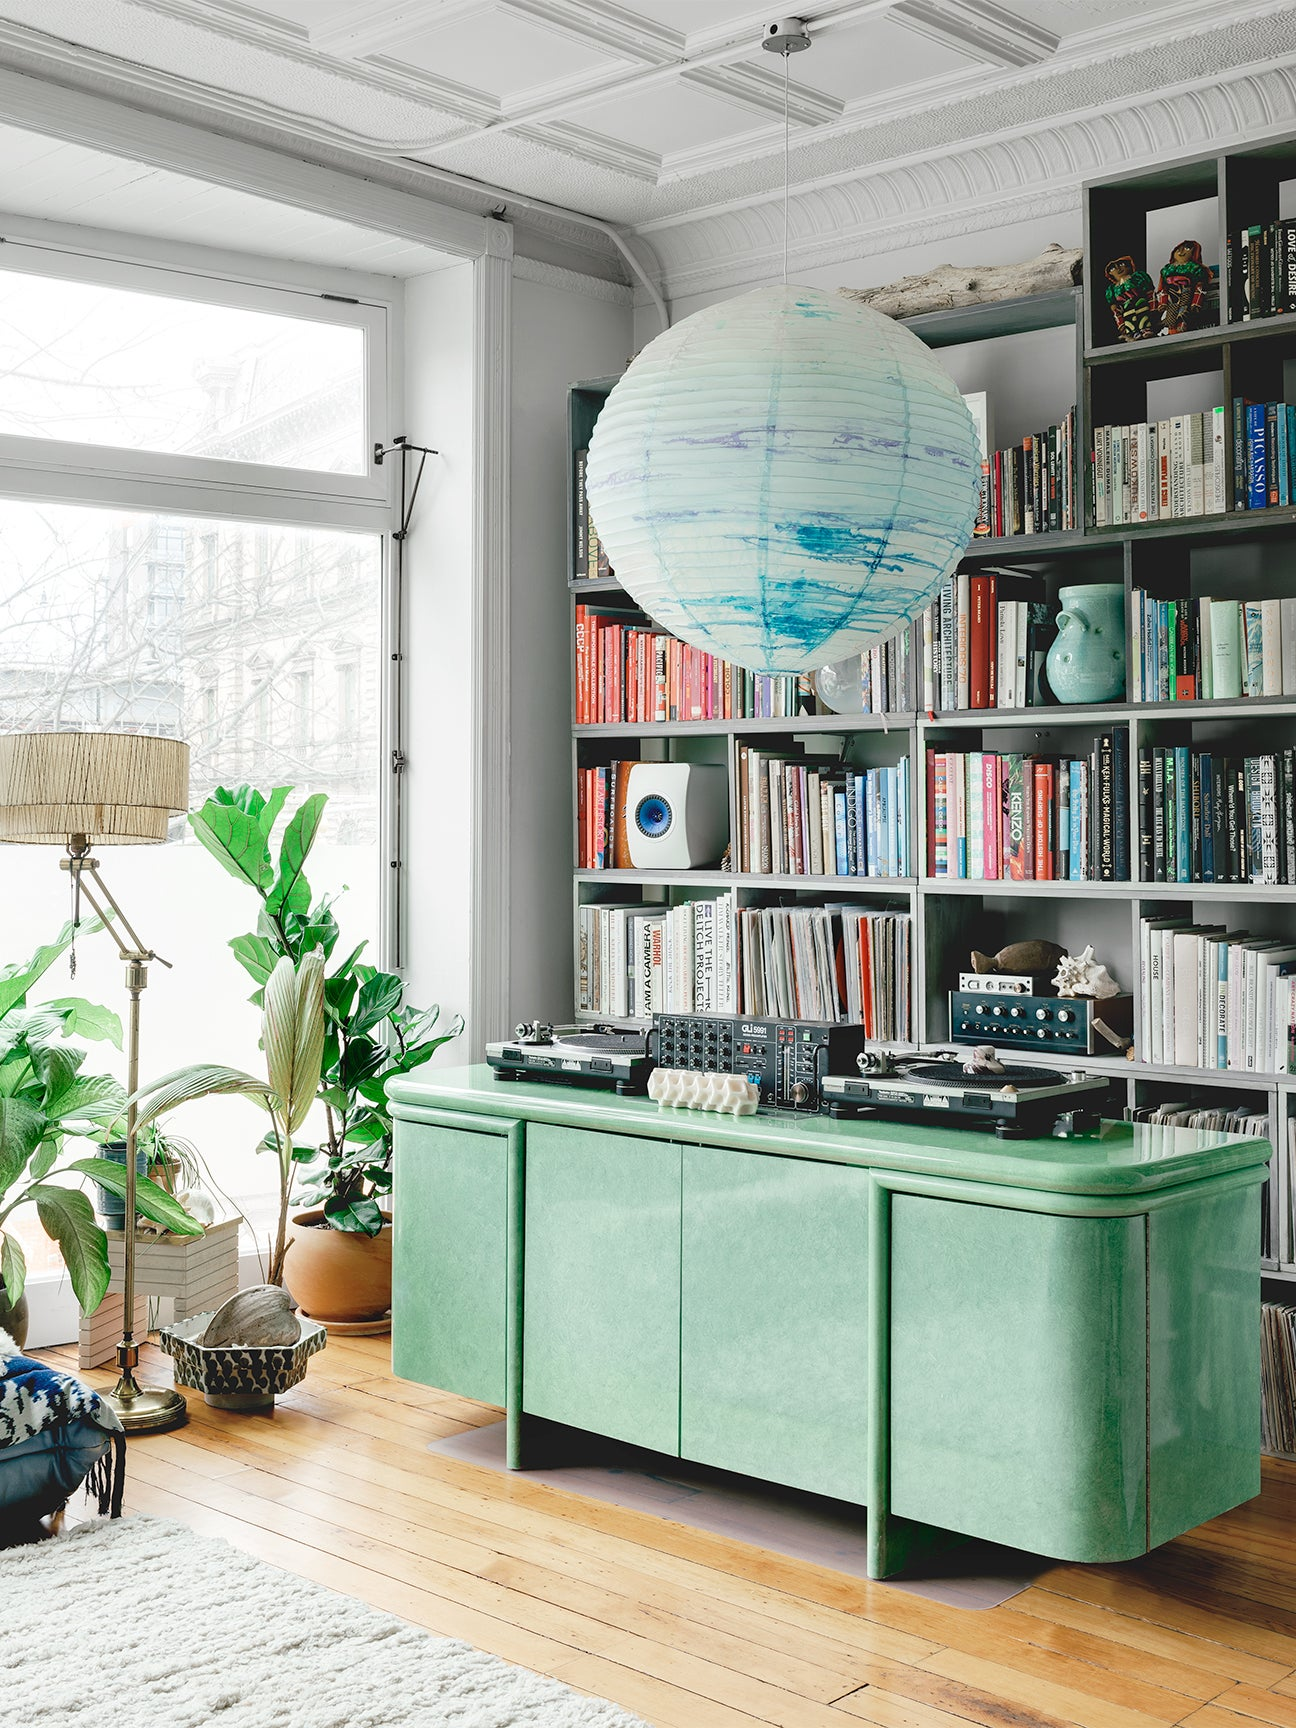 Room with green console and colorful bookshelf.